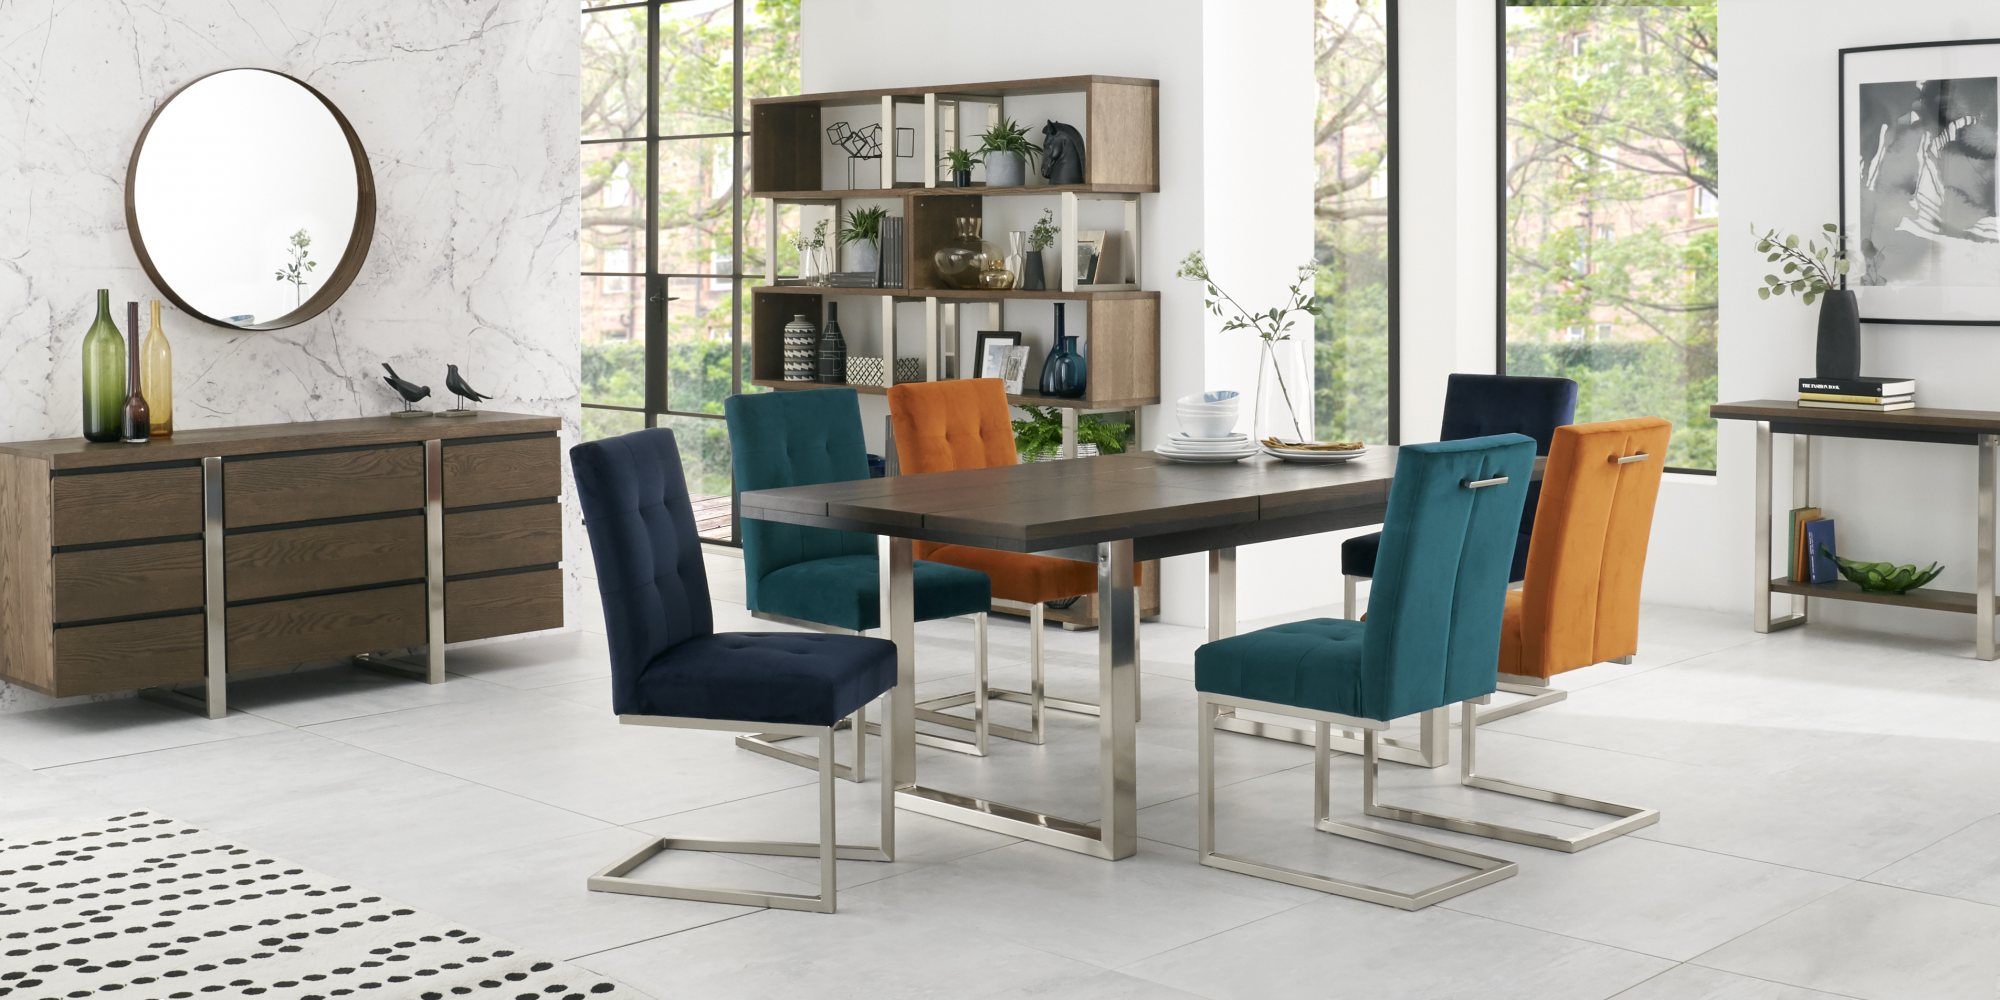 BRINDISI DINING SET MULTI COLOUR CHAIRS